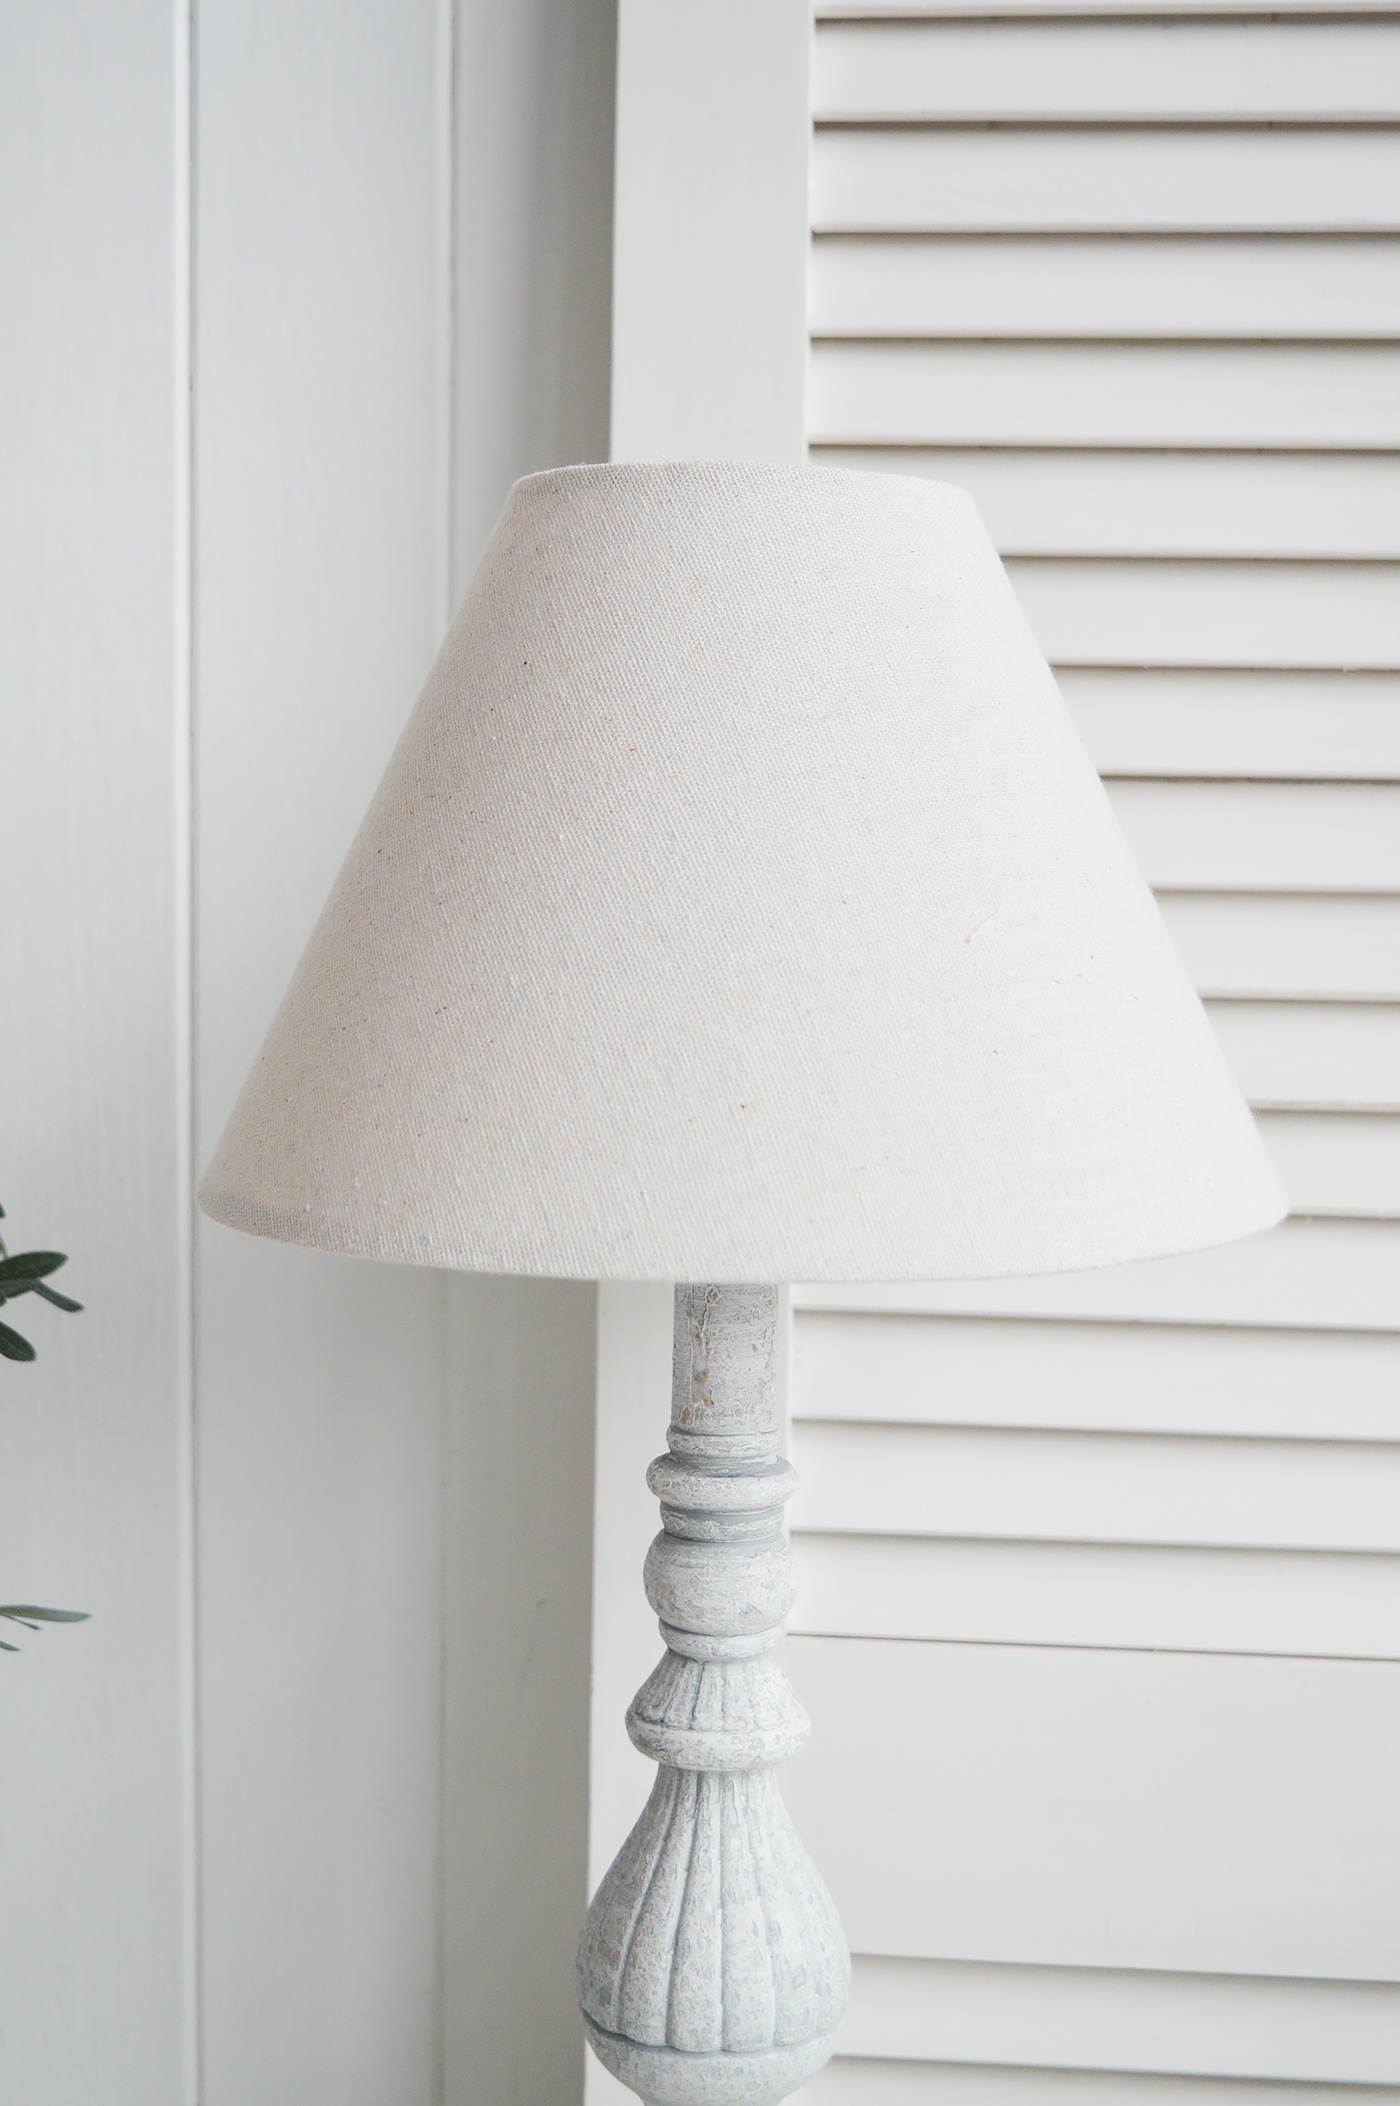 La Maison rustic grey table lamp with linen shade